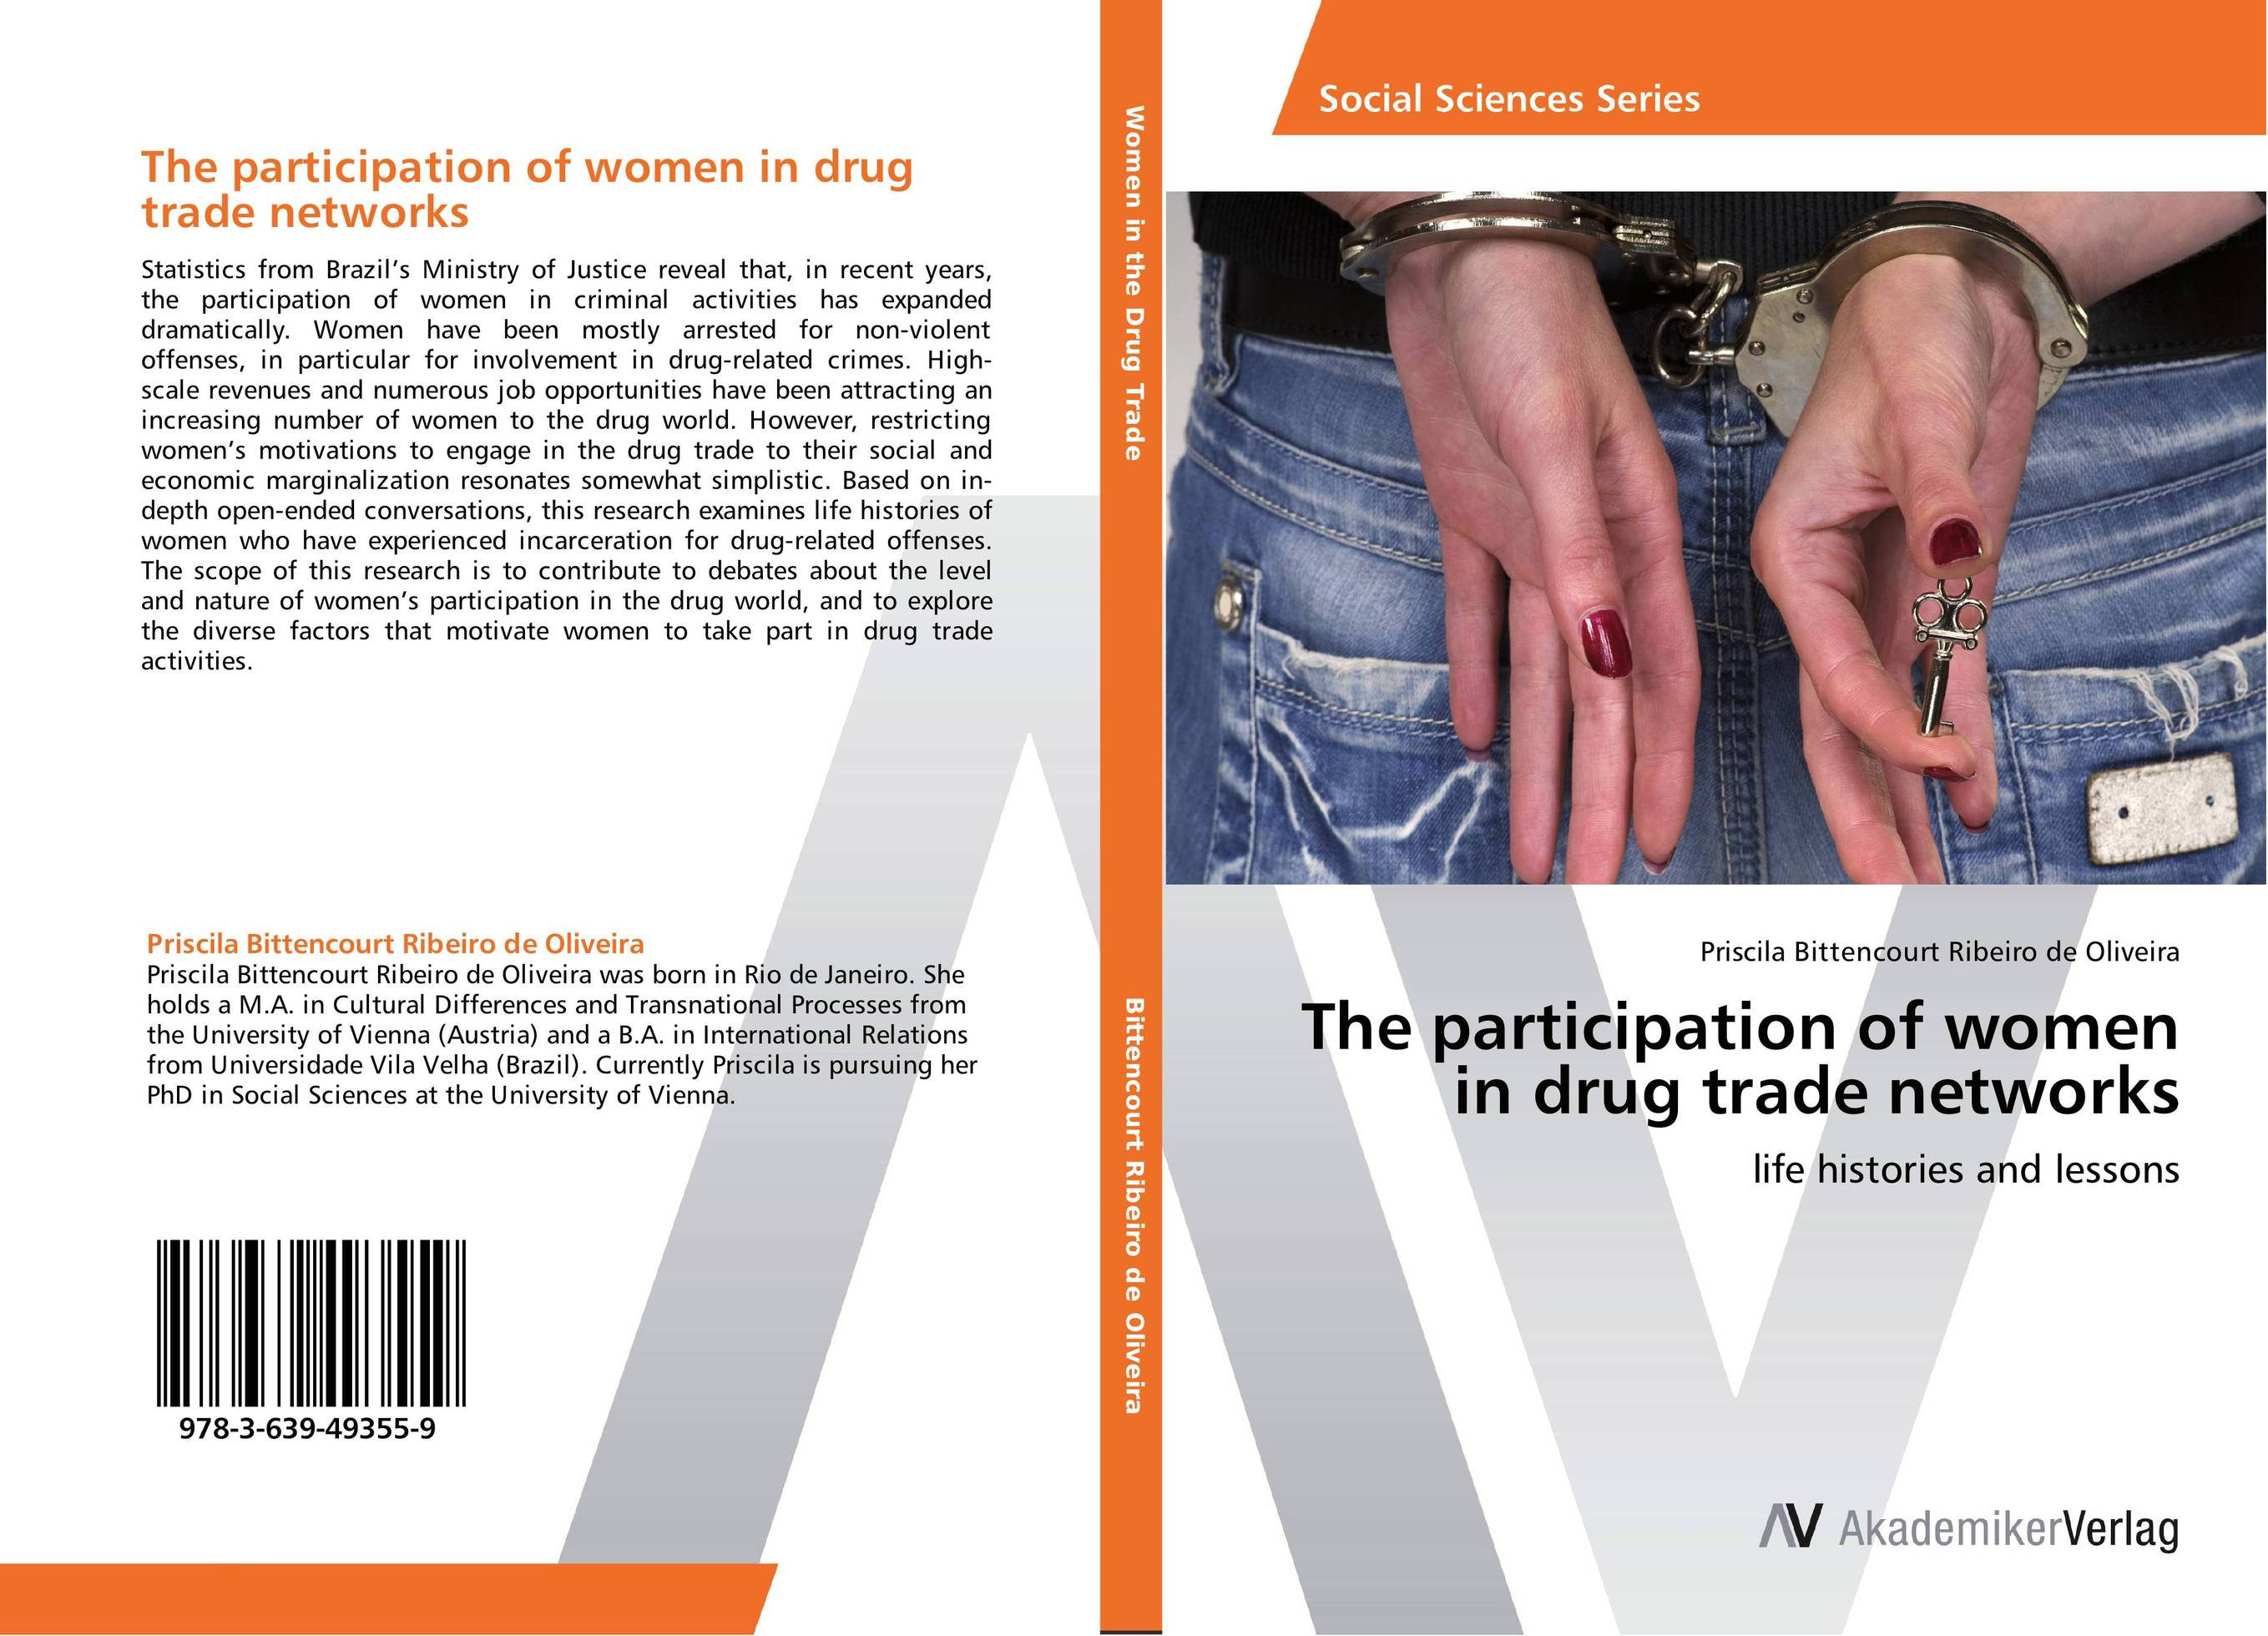 The participation of women in drug trade networks overview of drug utilization pattern in surgery